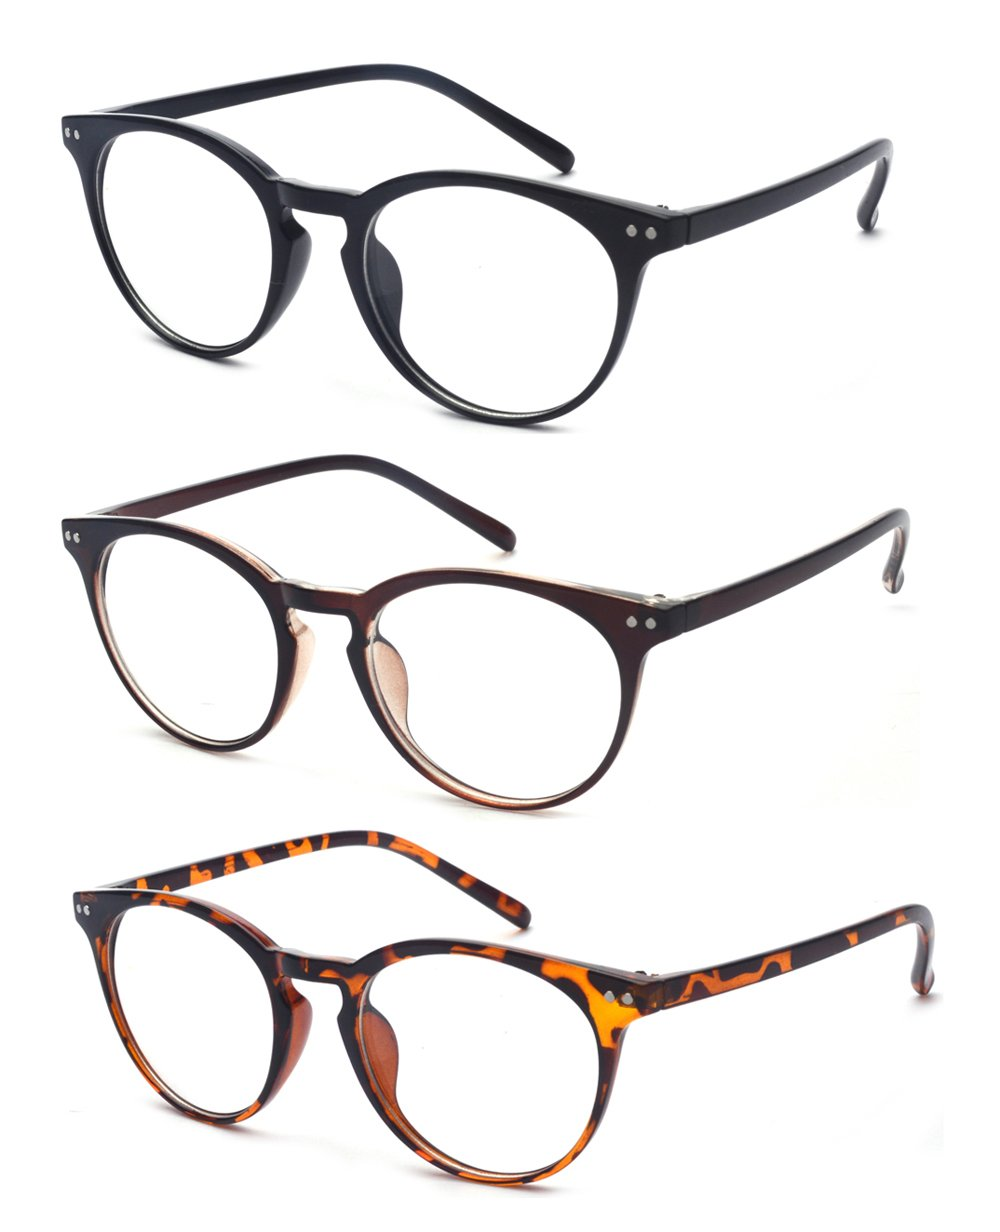 Outray Vintage Inspired Small Nails Round 3 Pack Spring Hinges Frame Reading Glasses 2.00